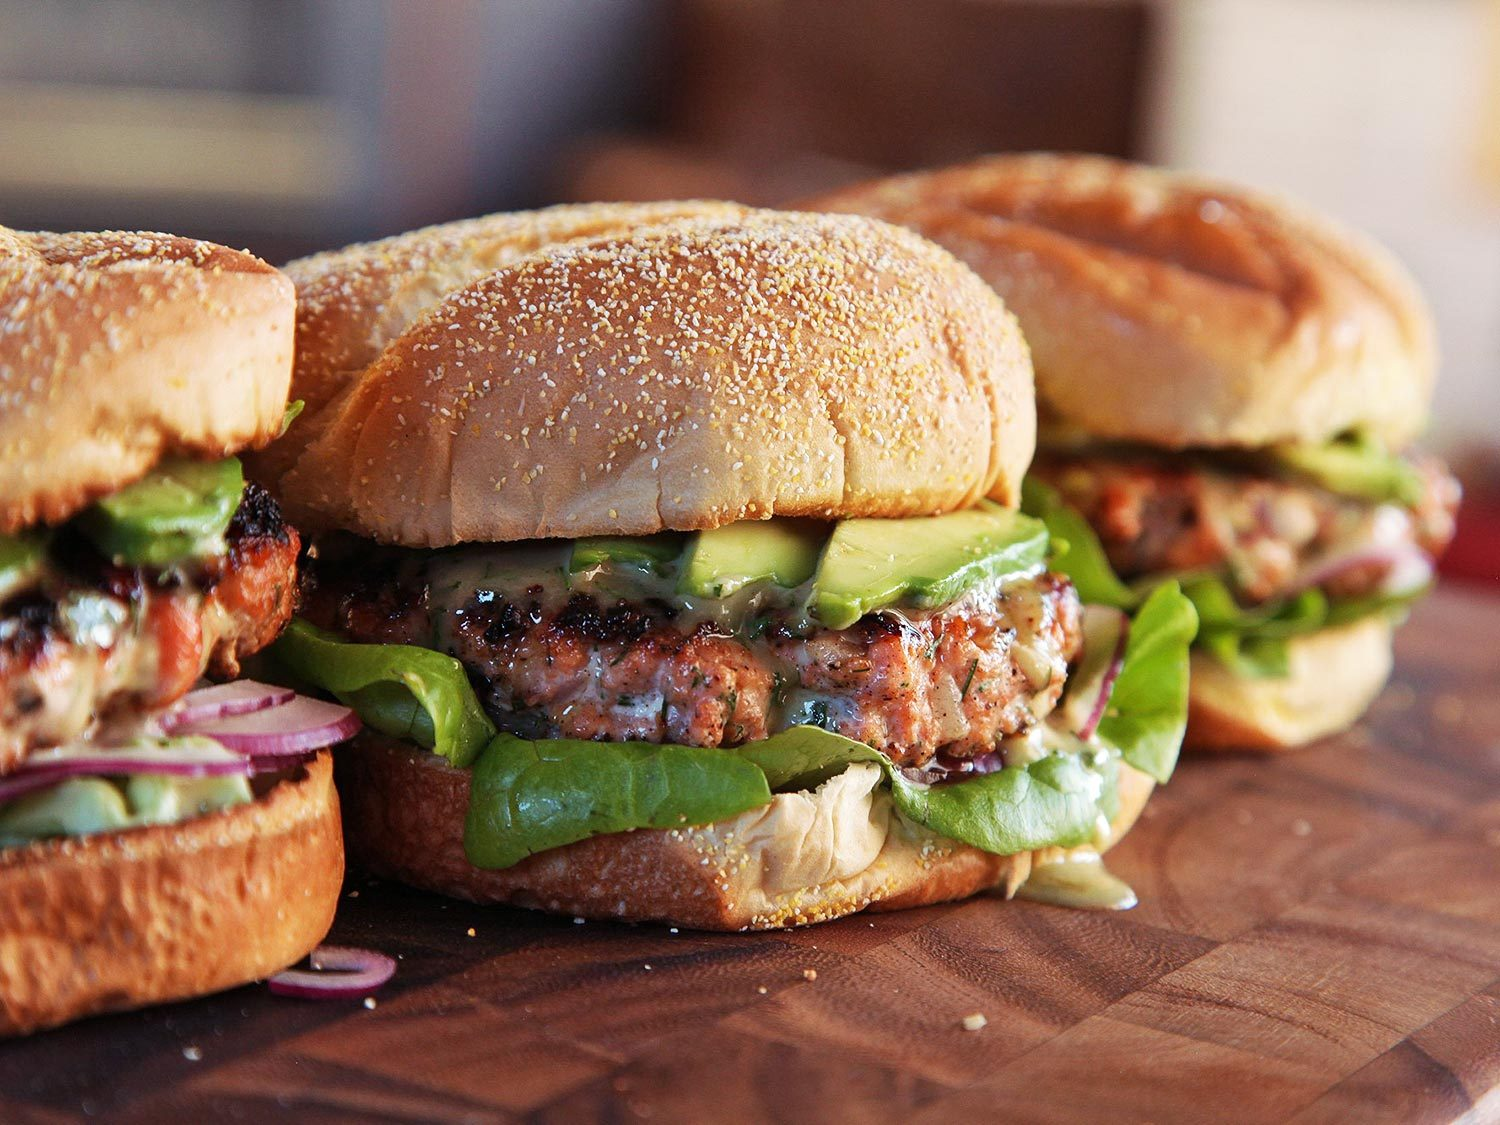 Burger with meat | LuckyFit